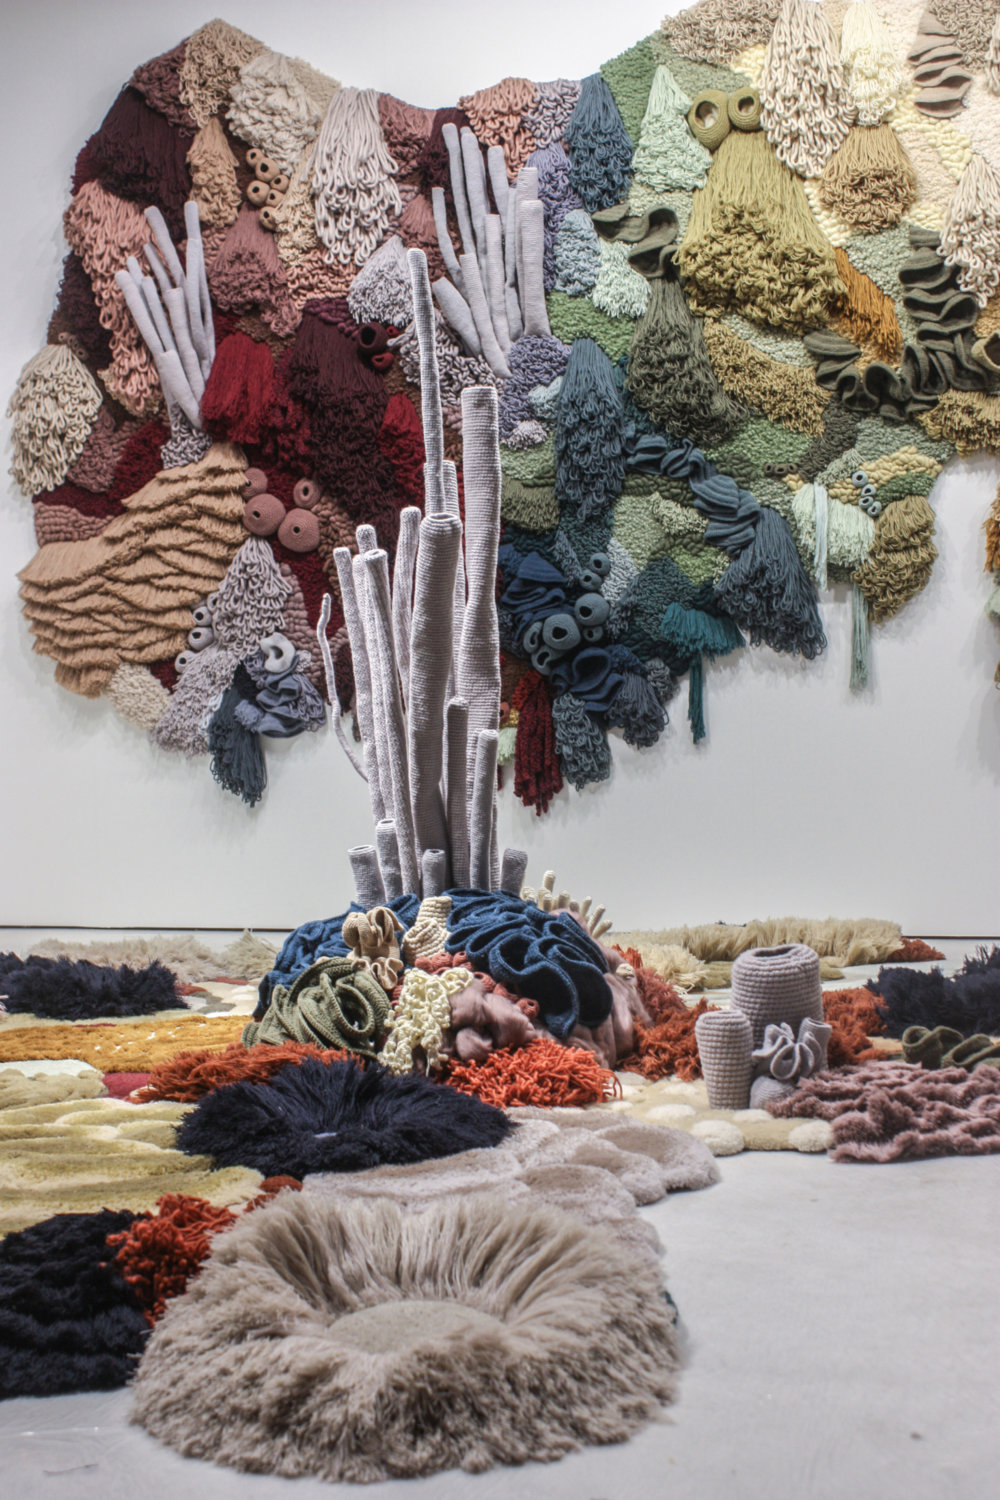 Coral Garden Stunning Installation Of Textile Coral Reefs By Vanessa Barragao 6